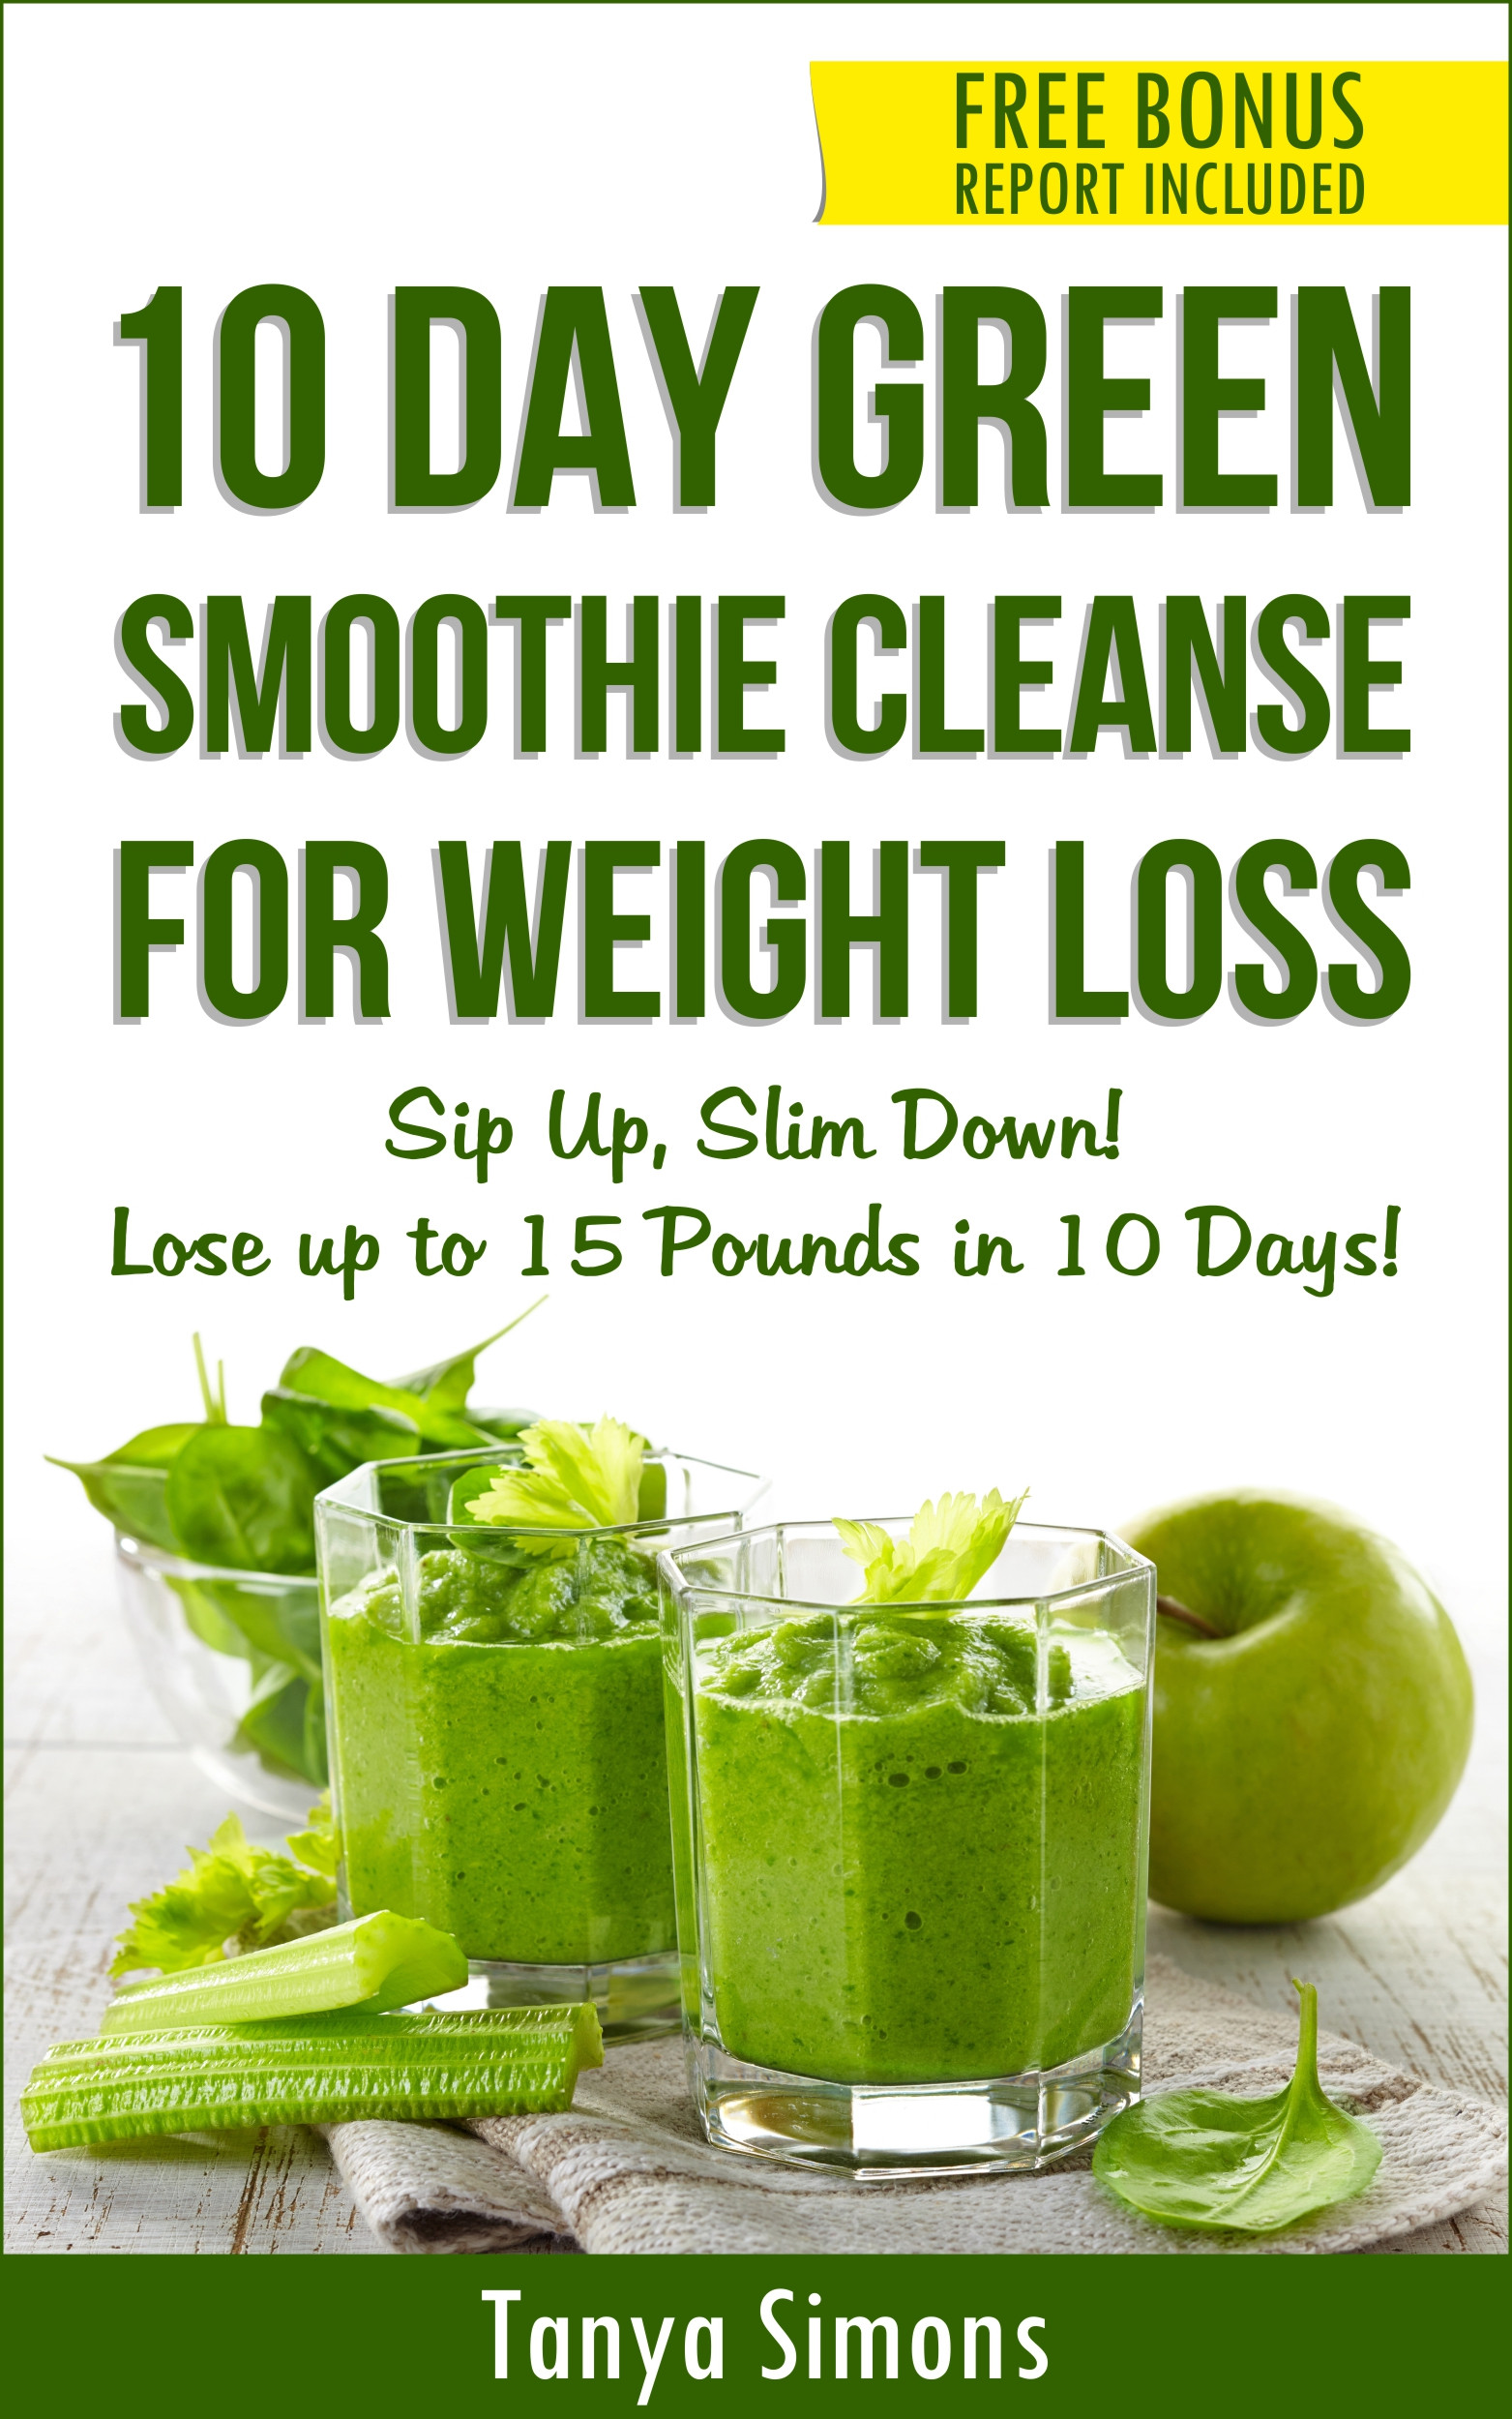 Cleansing Smoothies For Weight Loss  10 Day Green Smoothie Cleanse Lose 15lbs with 10 Day